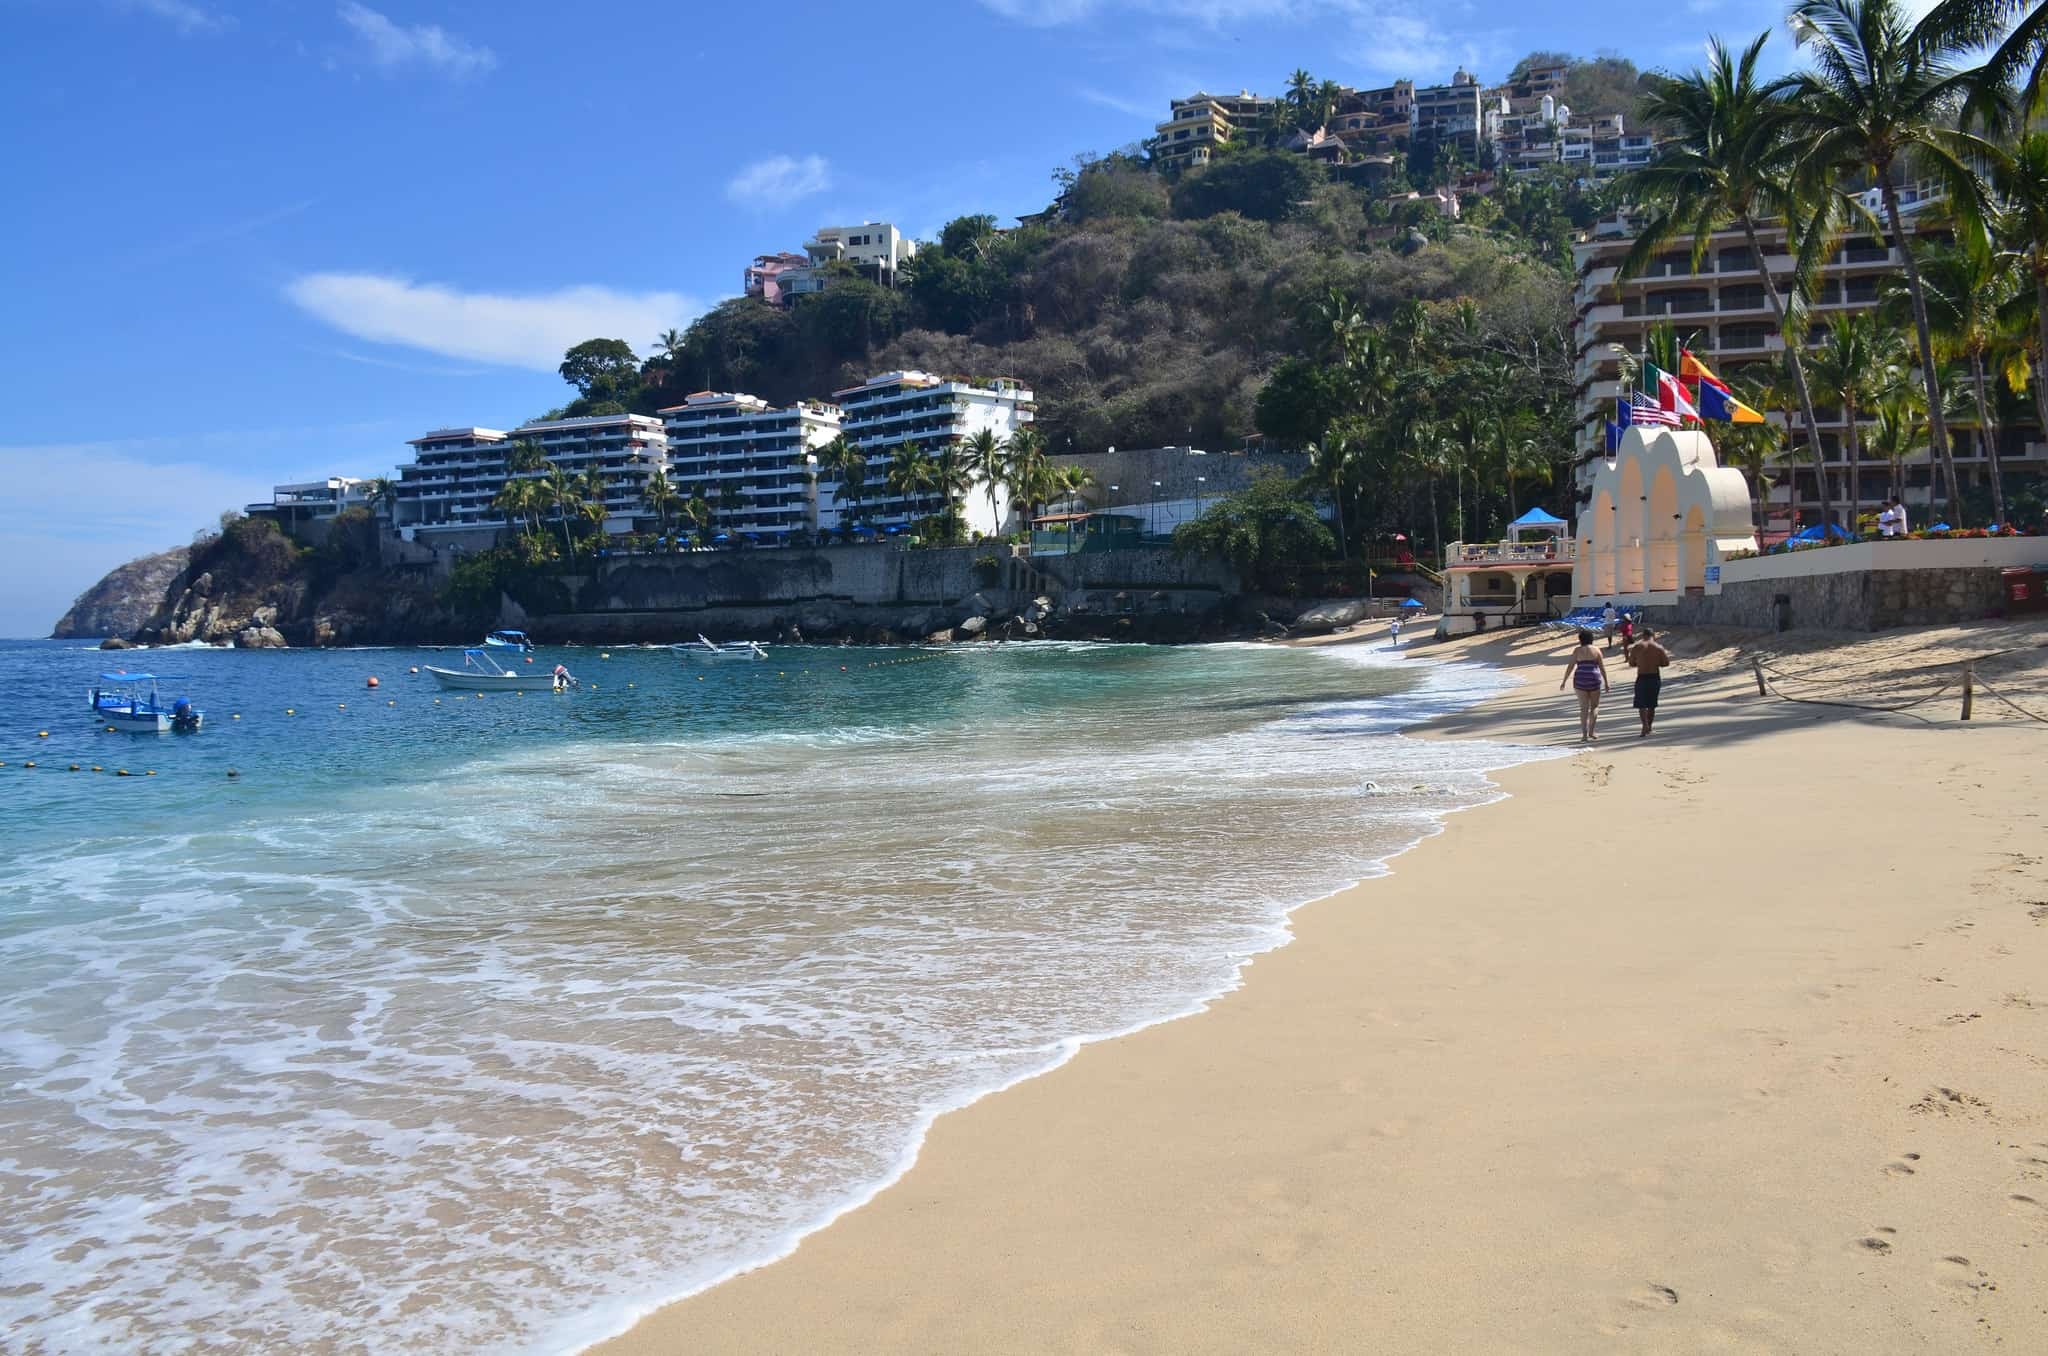 Mexico / Cheapest Places To Travel